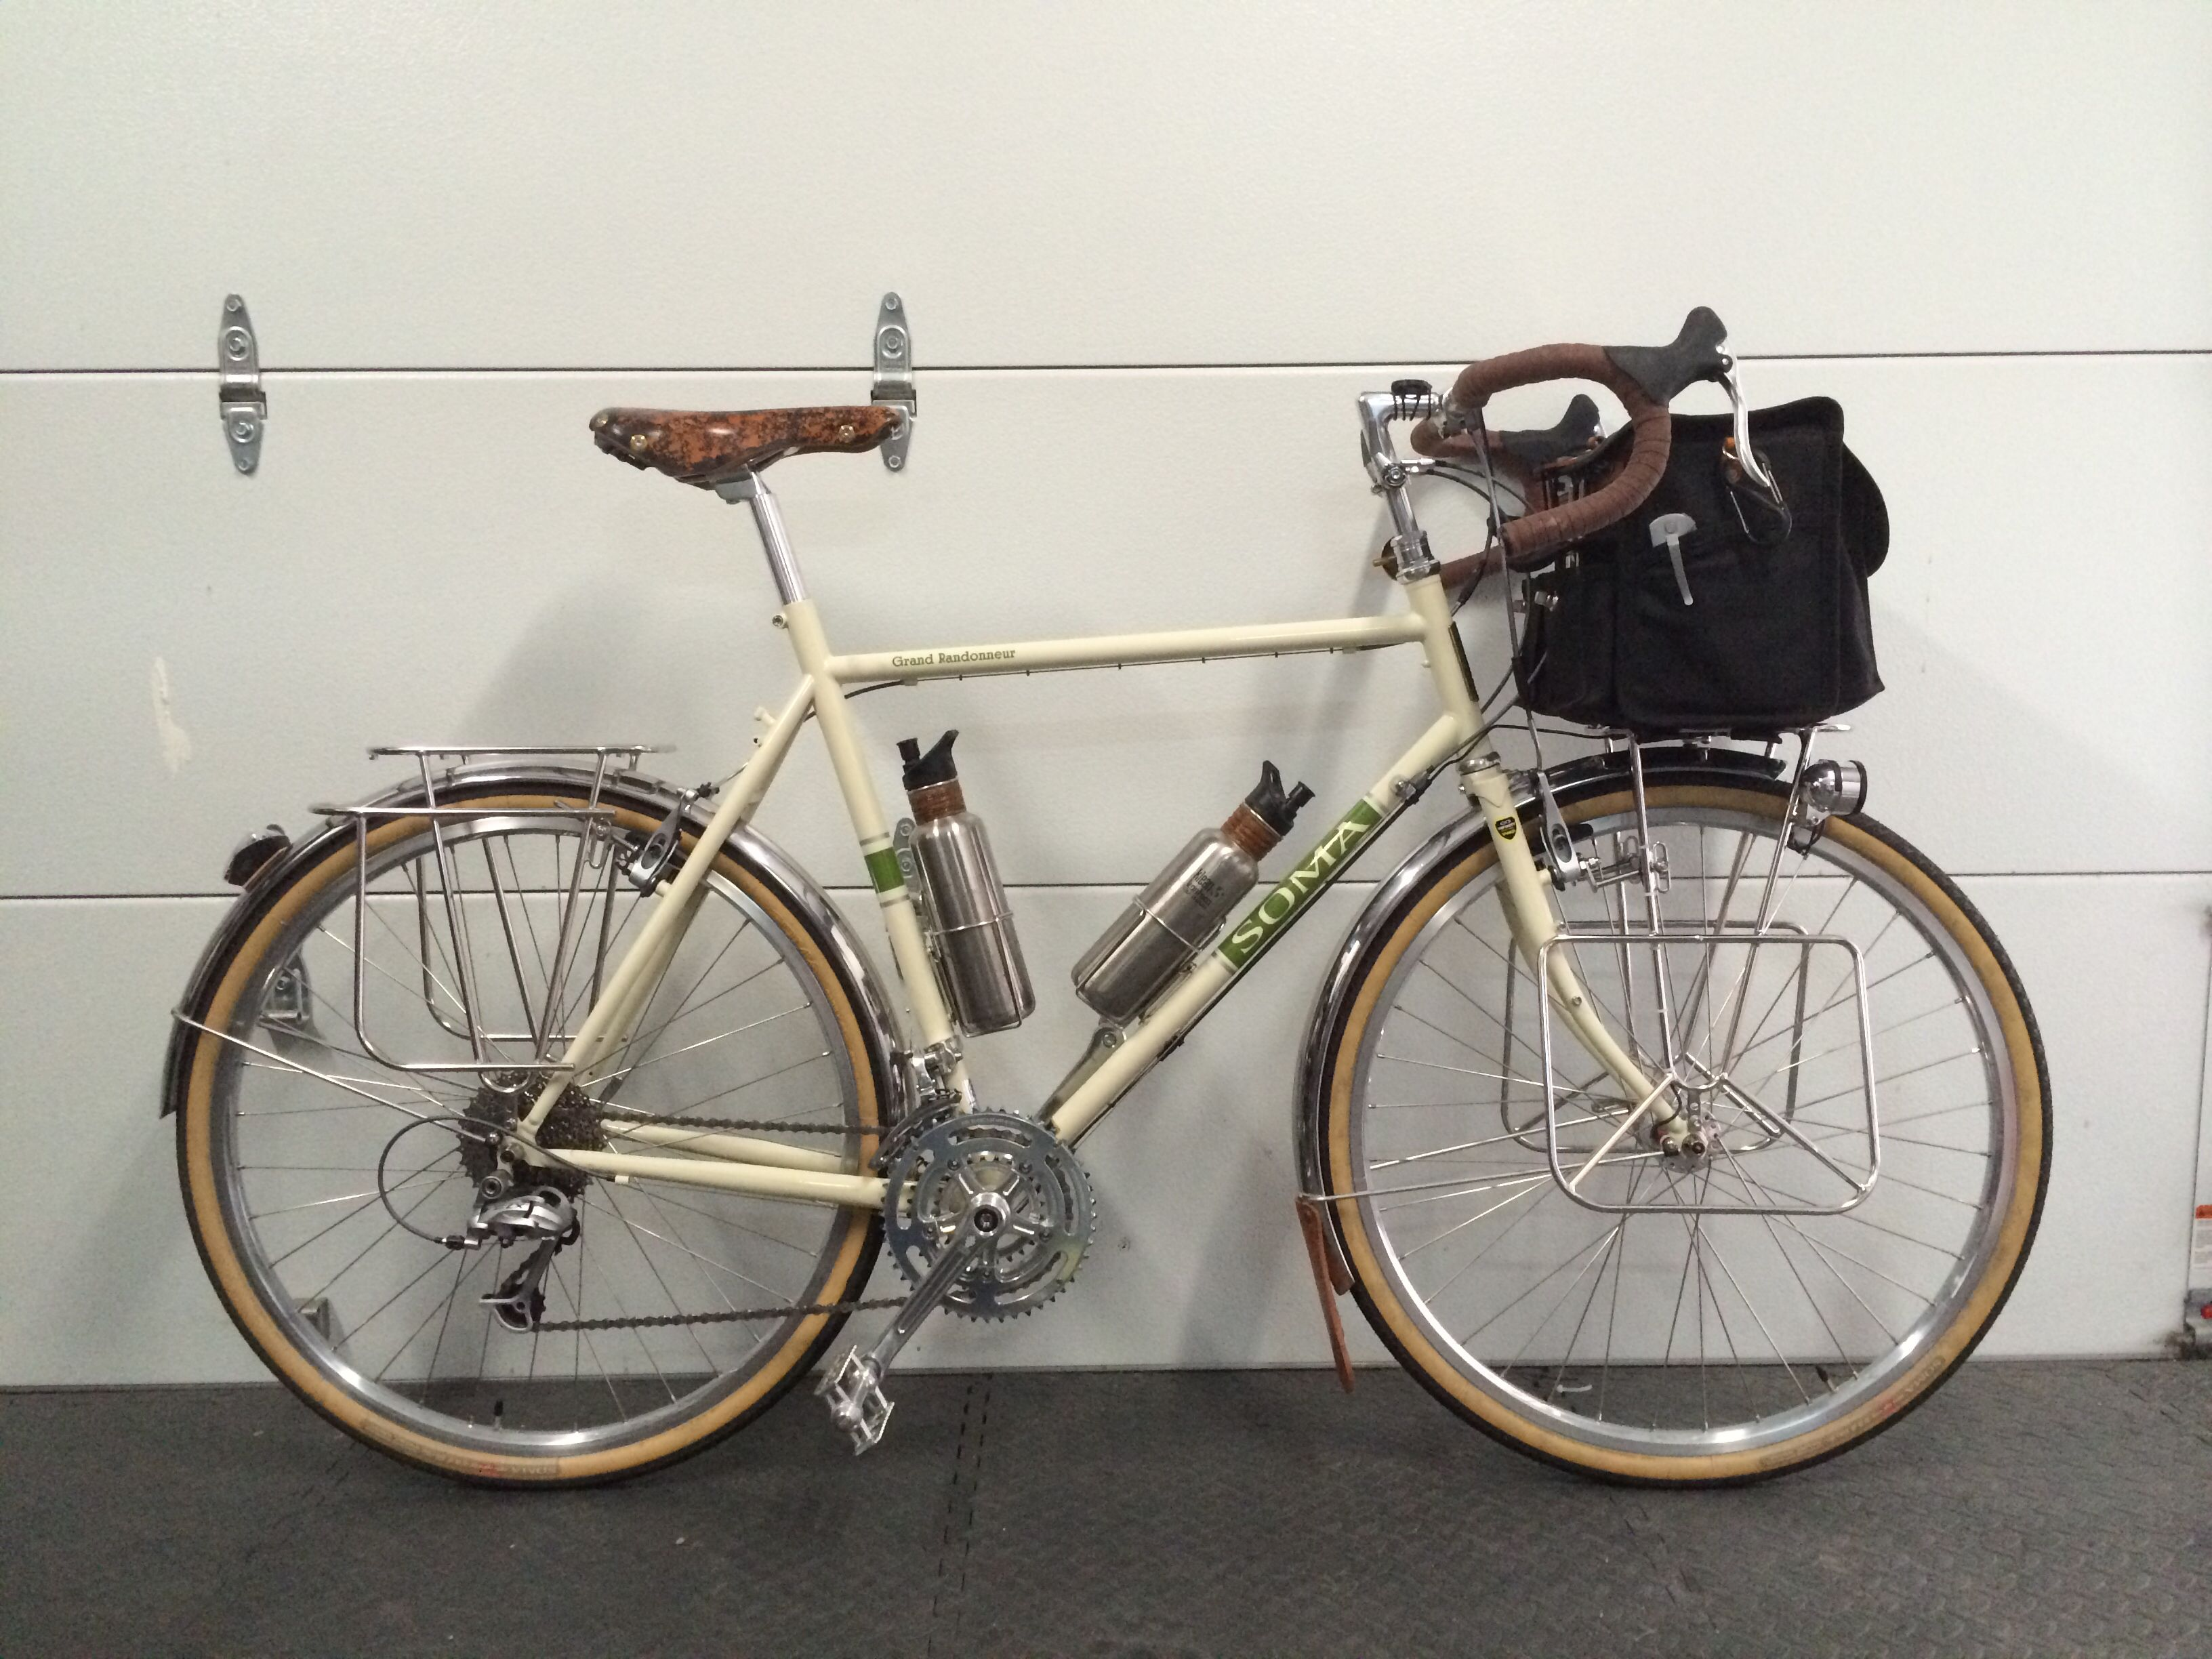 Soma Grand Randonneur, campeur style | The Stable | Pinterest